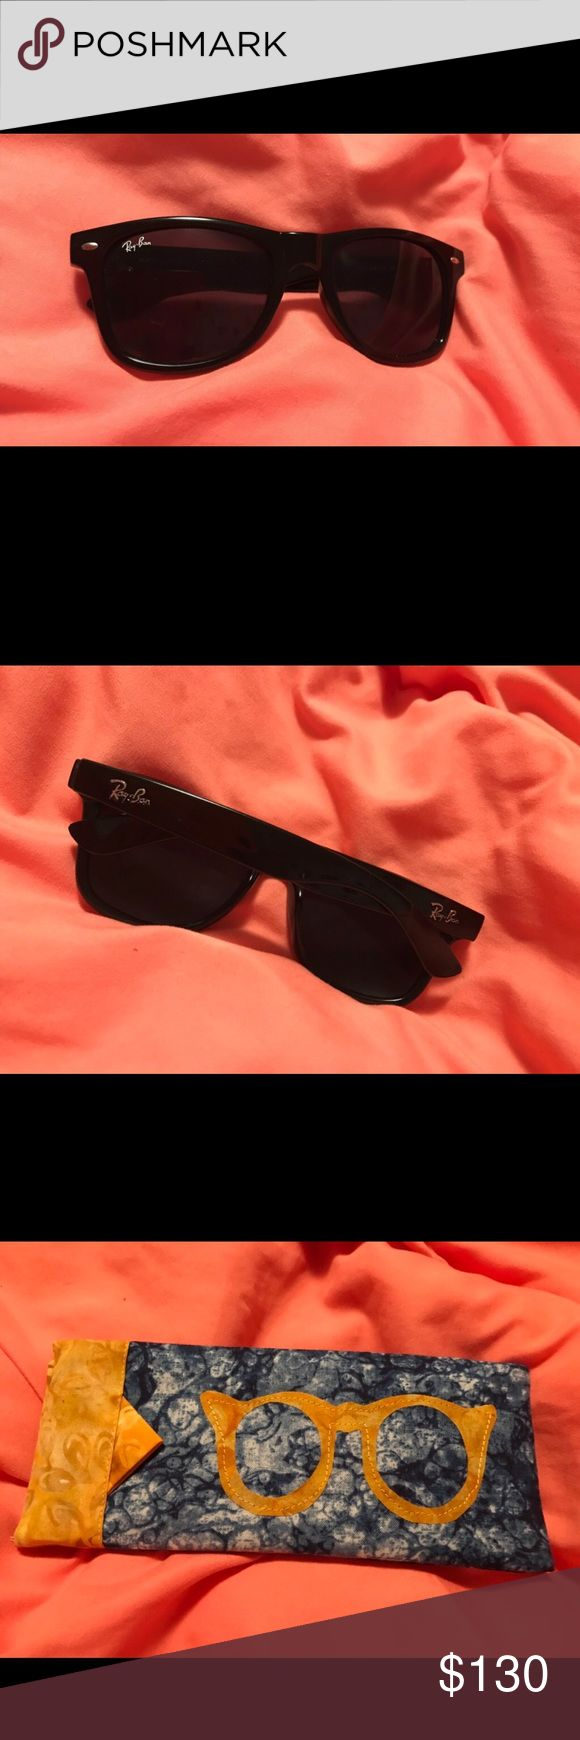 Black lens ray-ban wayfarer sunglasses w/ frame Worn once, dont like the frame on my face. Comes with custom case. Price listed or BEST OFFER. Like new. Ray-Ban Accessories Sunglasses